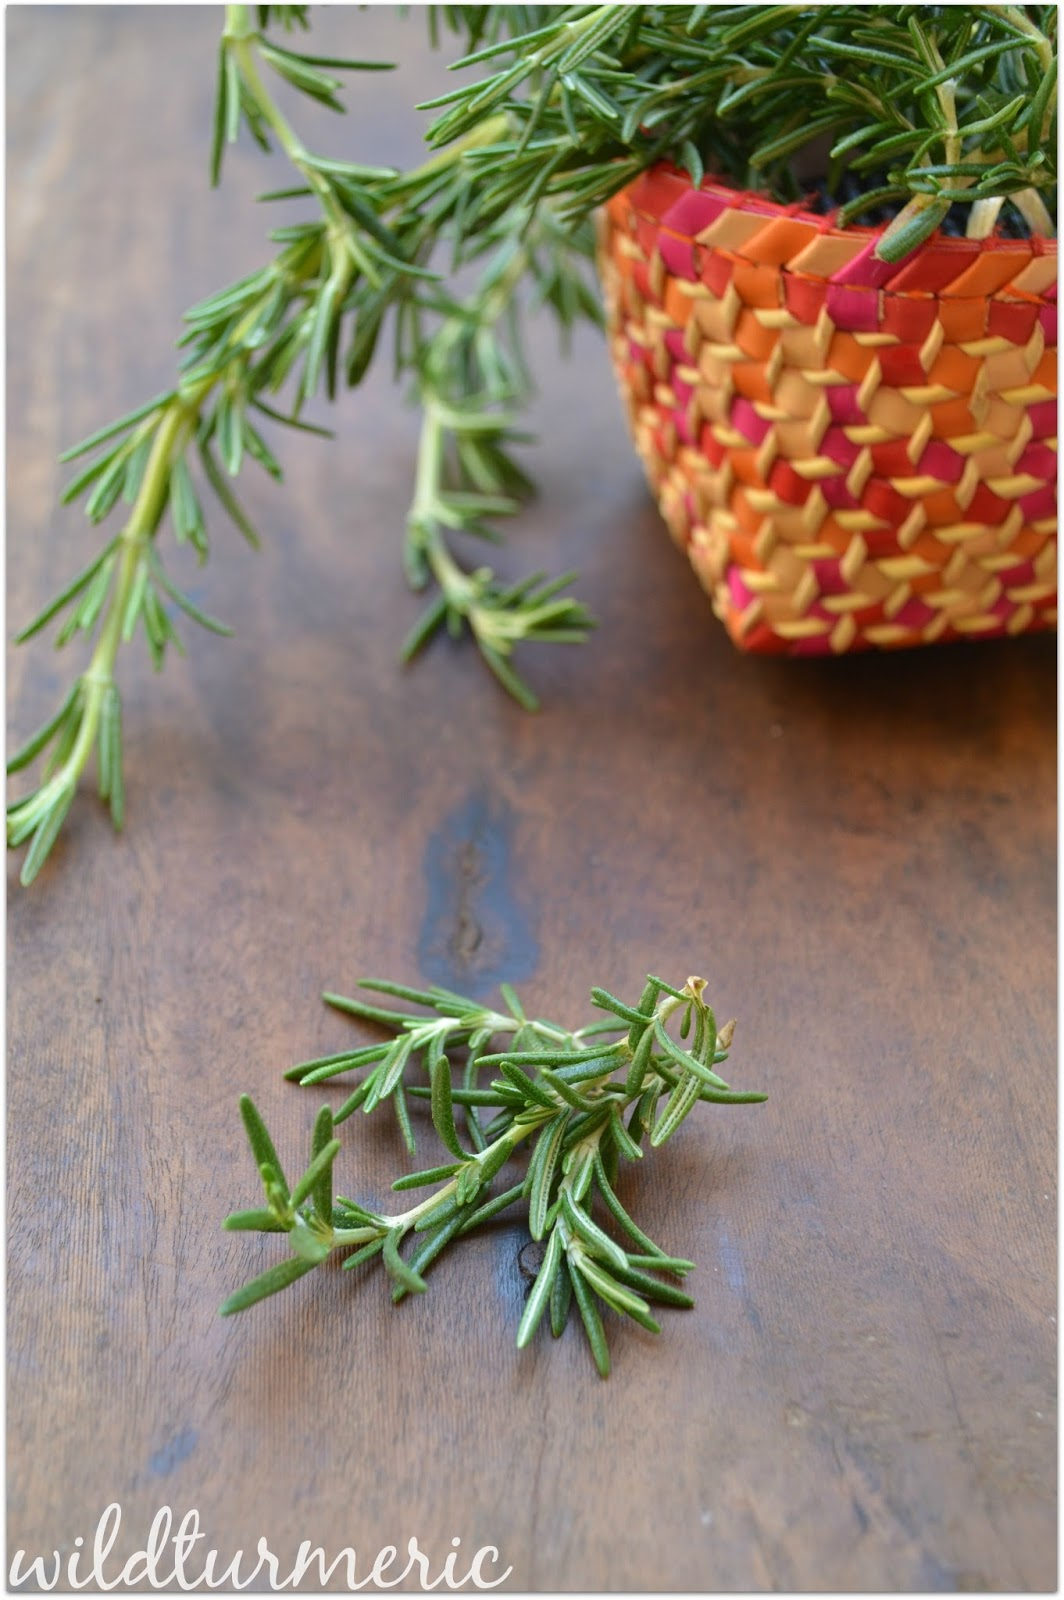 10 Top Medicinal Uses Of Rosemary For Hair, Skin & Health